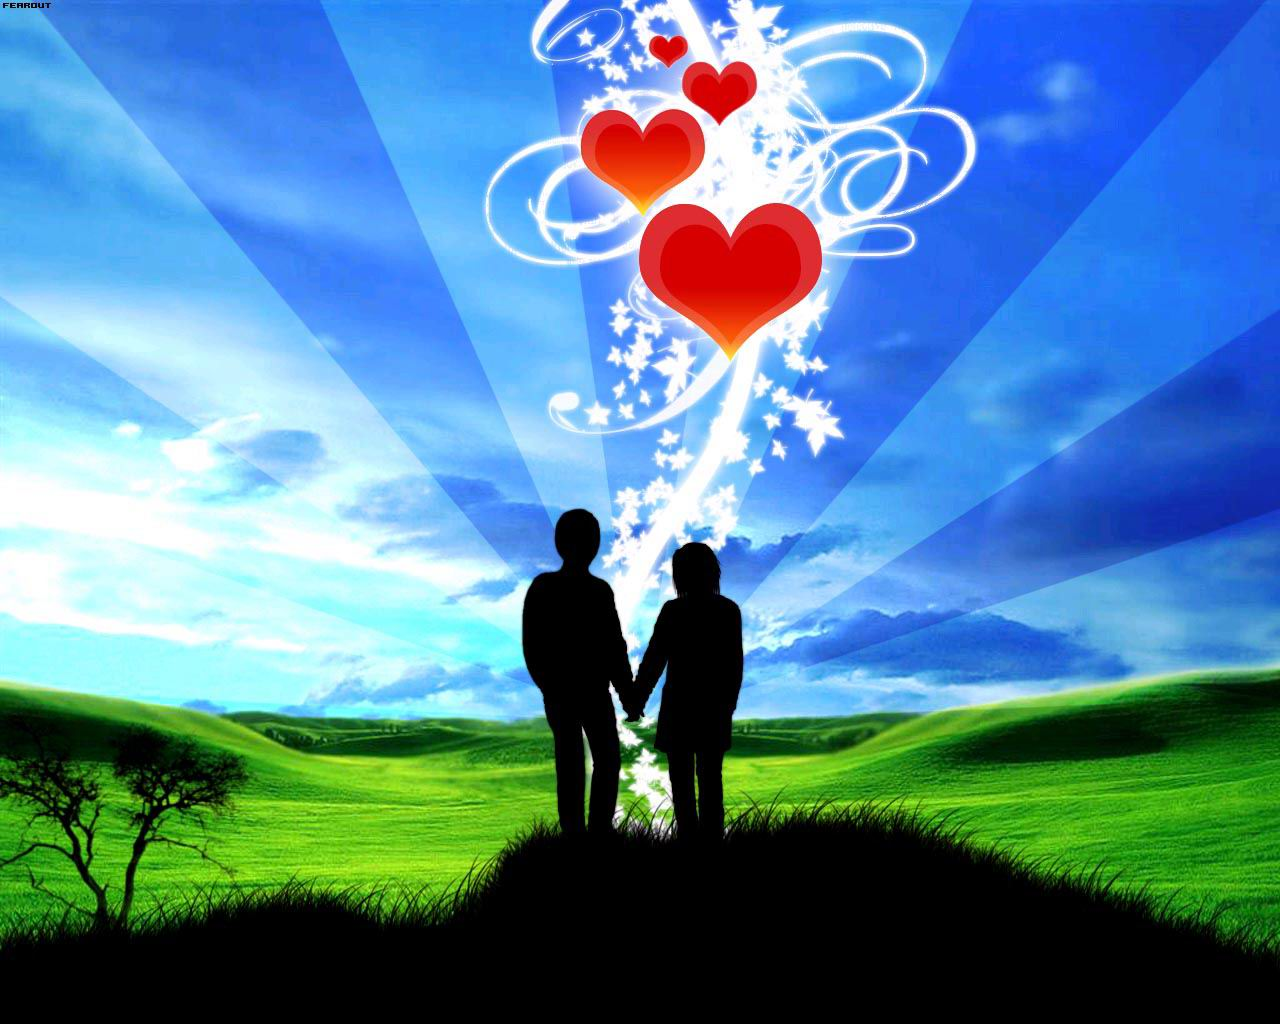 Love Wallpapers New Latest : Love is Life: Love wallpapers new love wallpapers ...